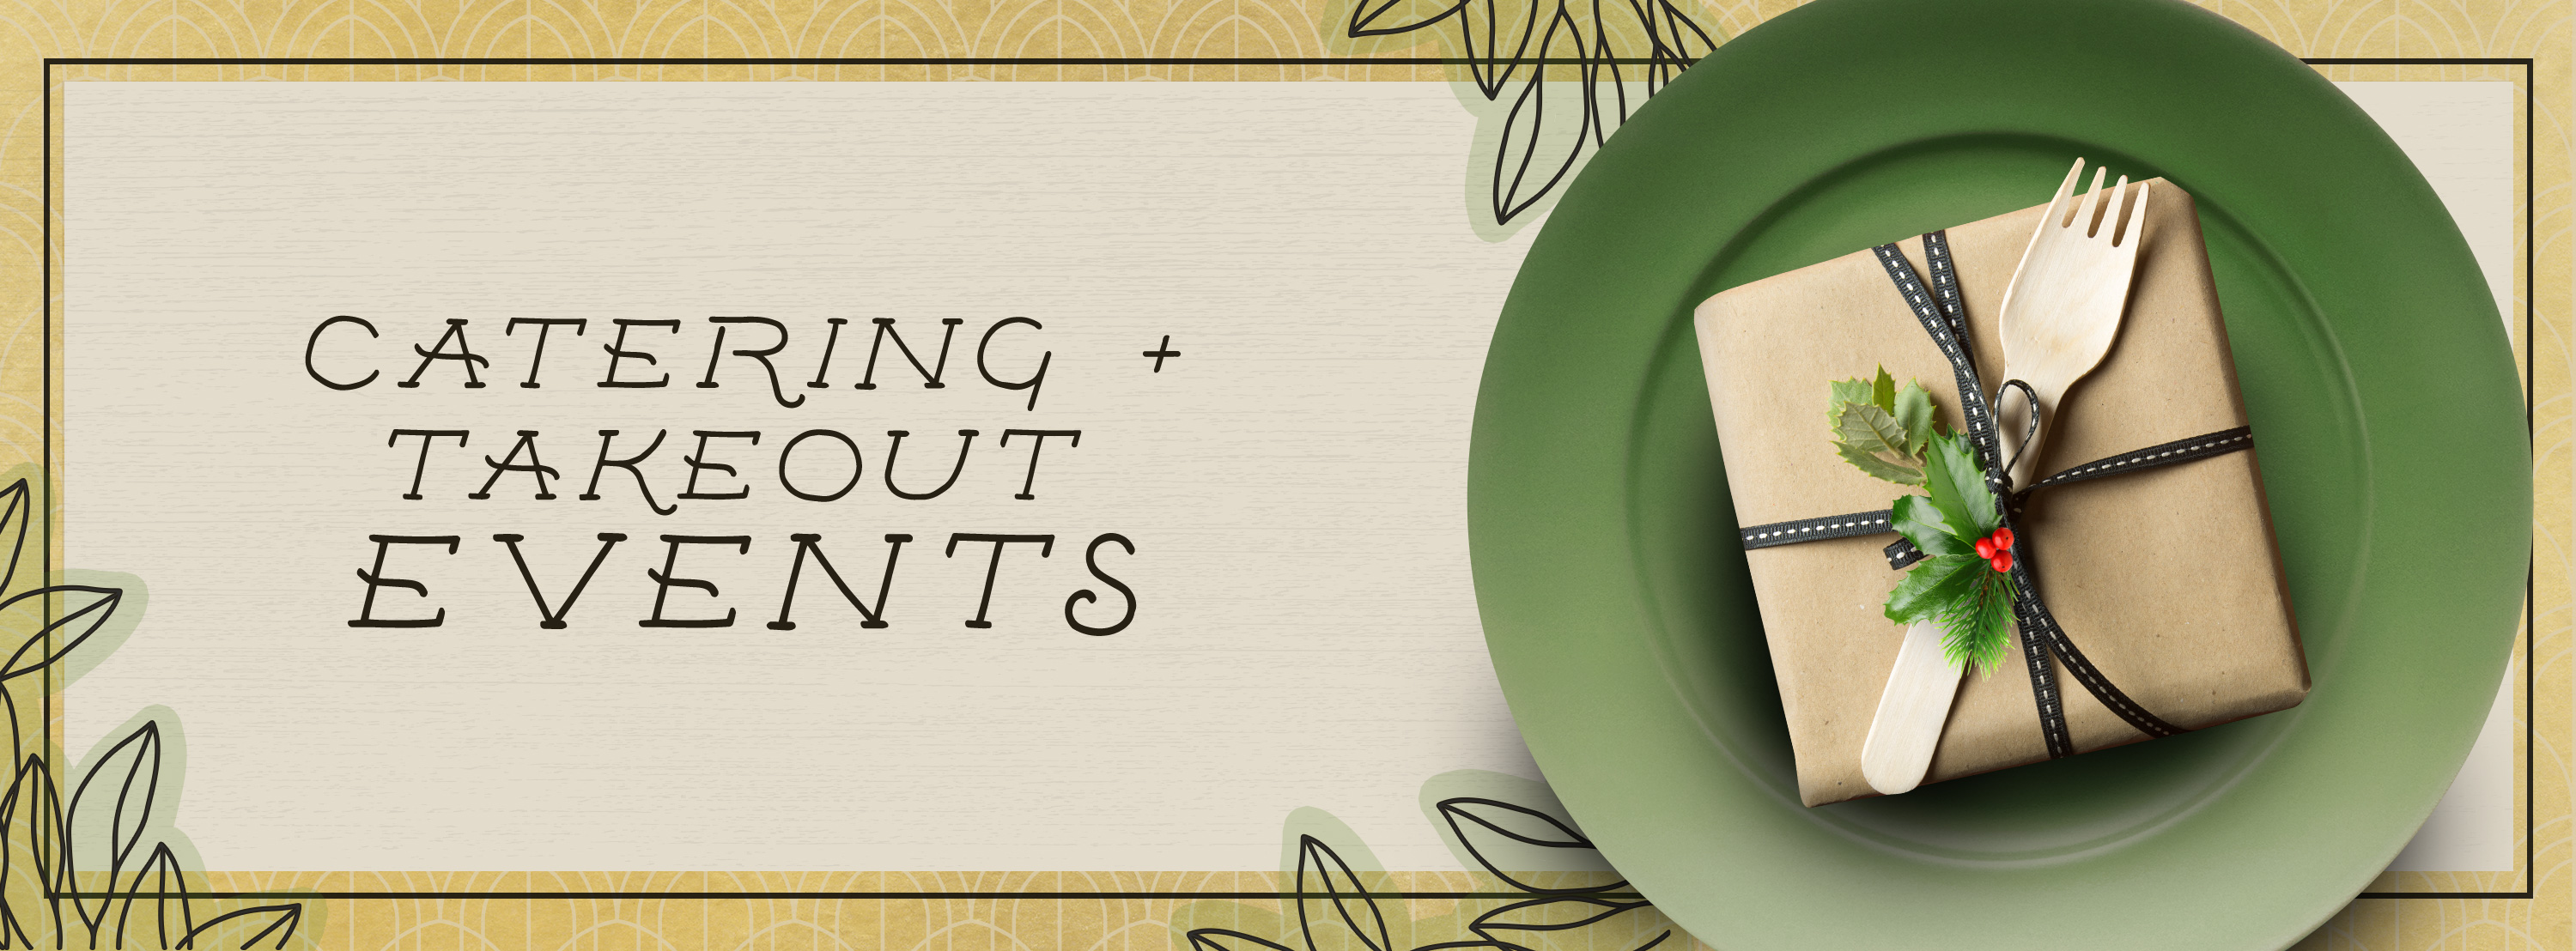 Catering and Takeout header image with a plate and a wrapped present, compostable fork